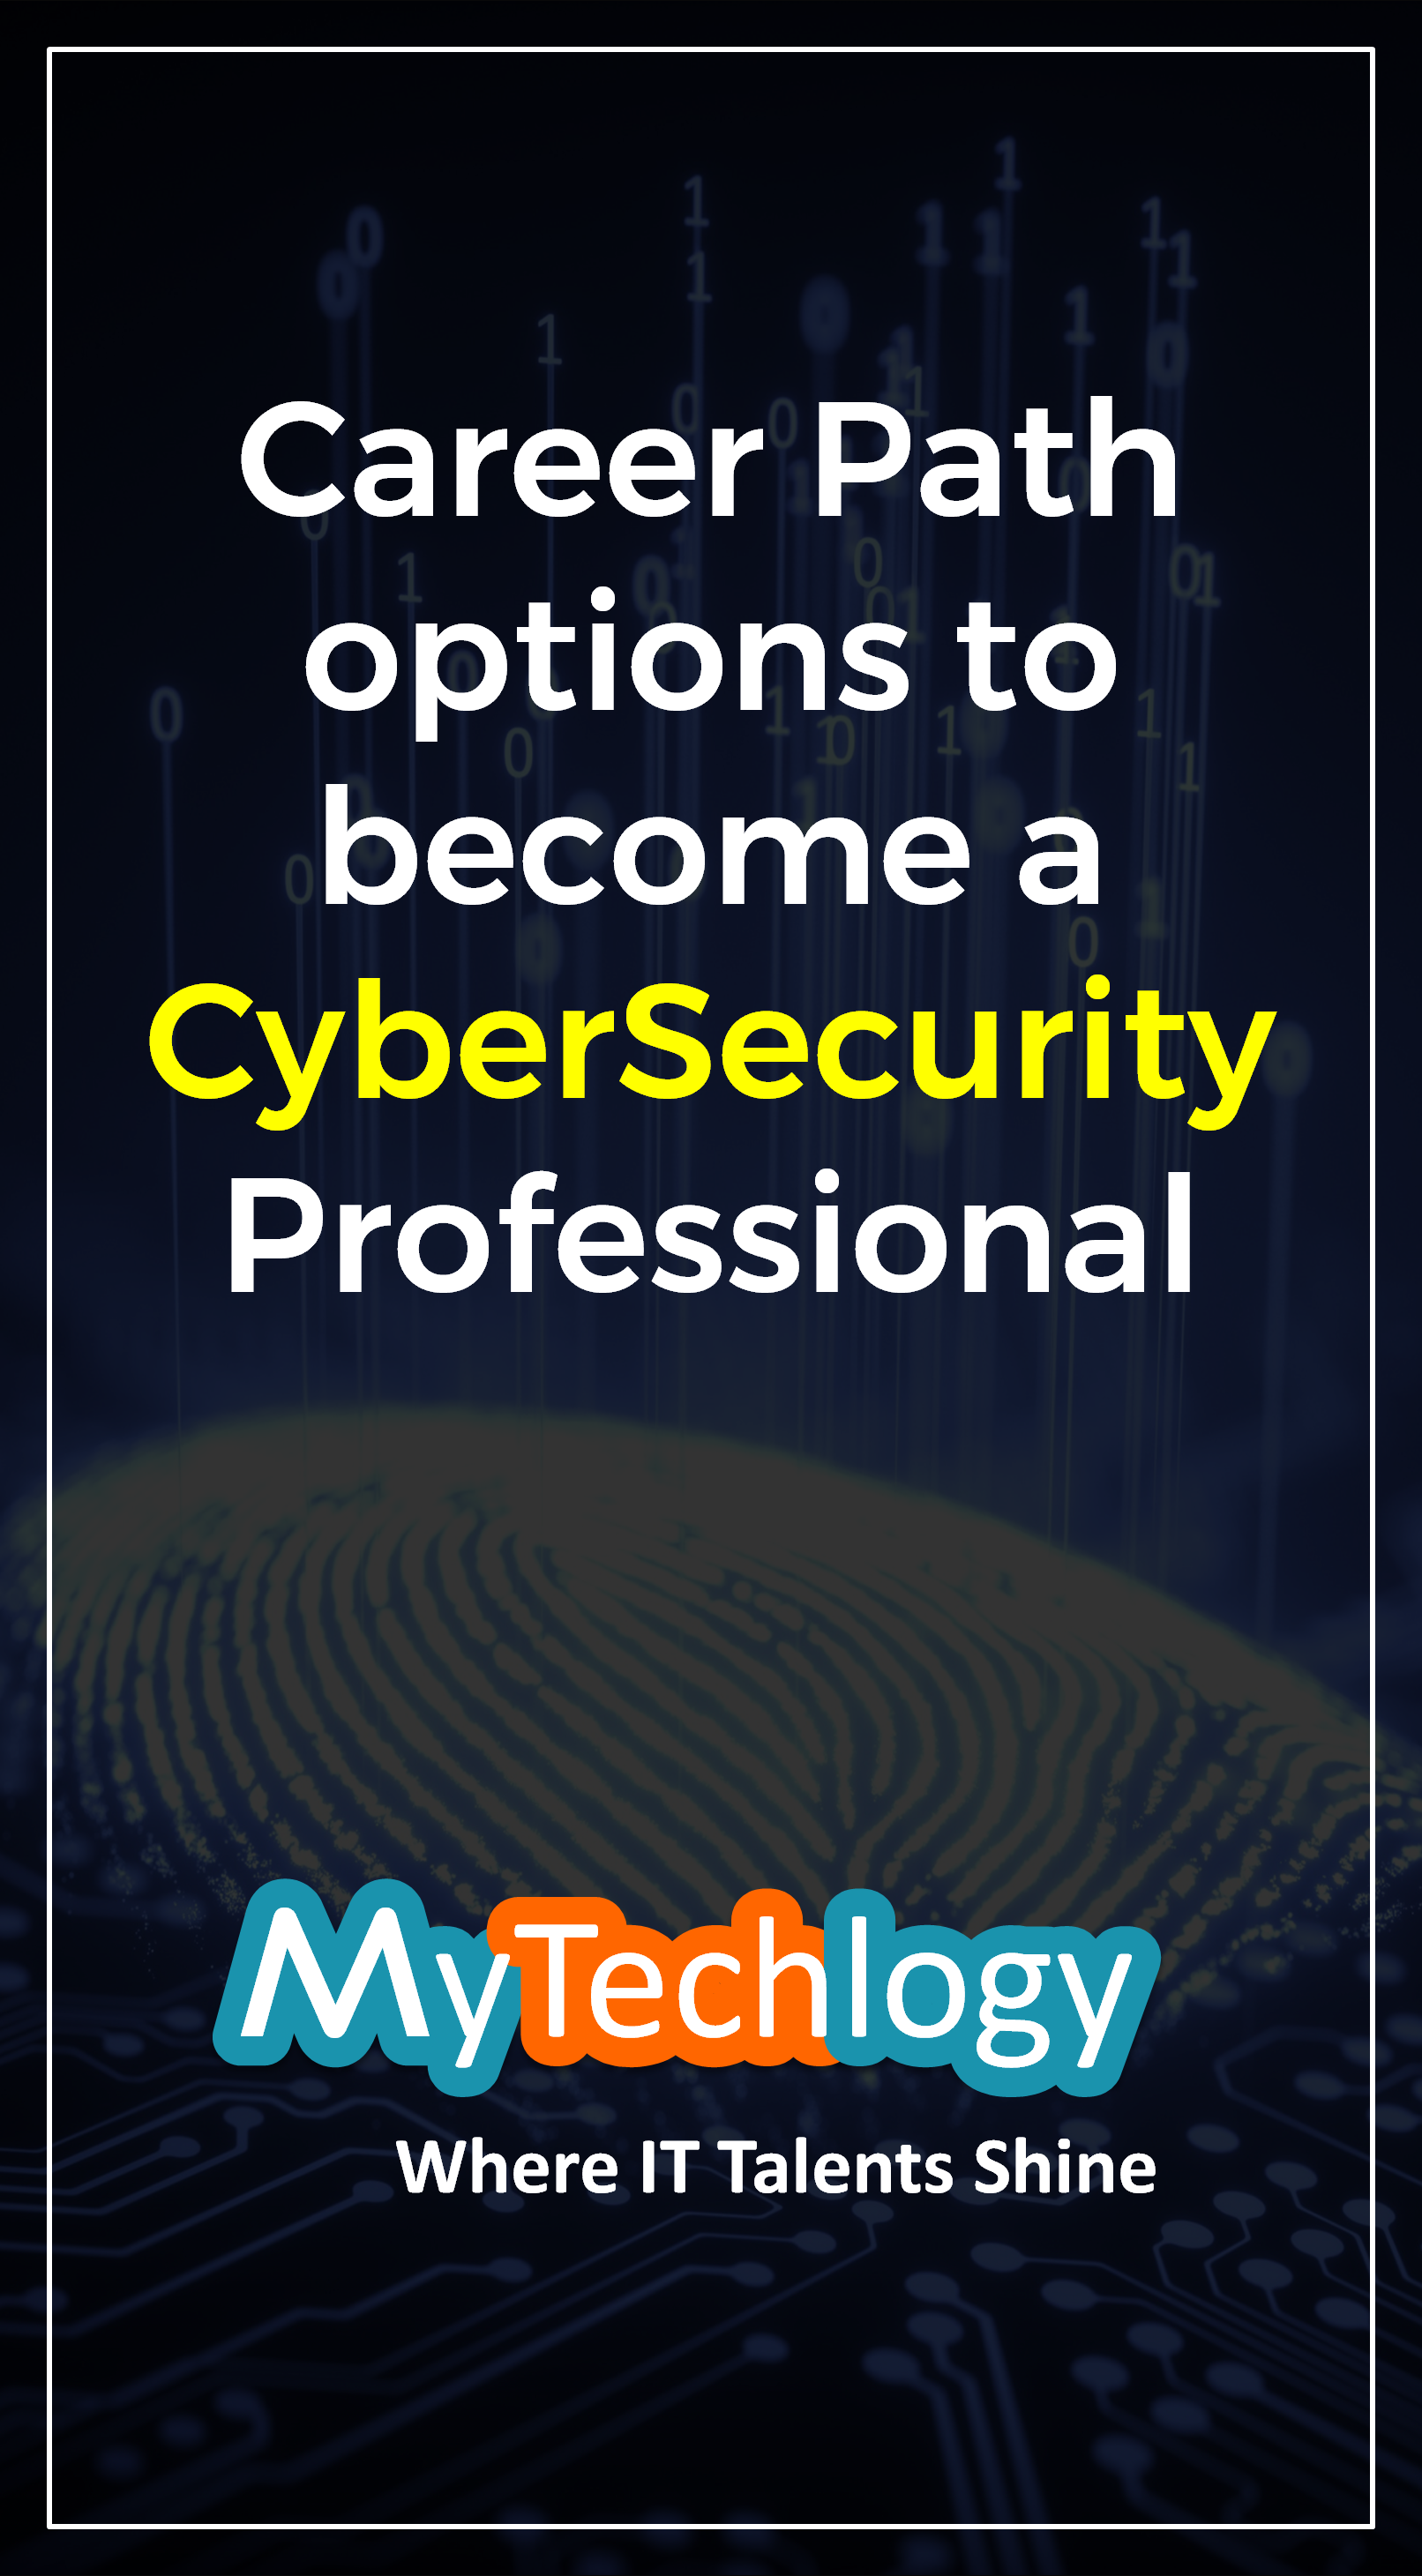 Career Path Options And Framework To Becoming A Cybersecurity Professional 21582 Mytechlogy Cyber Security Cyber Security Education Career Path